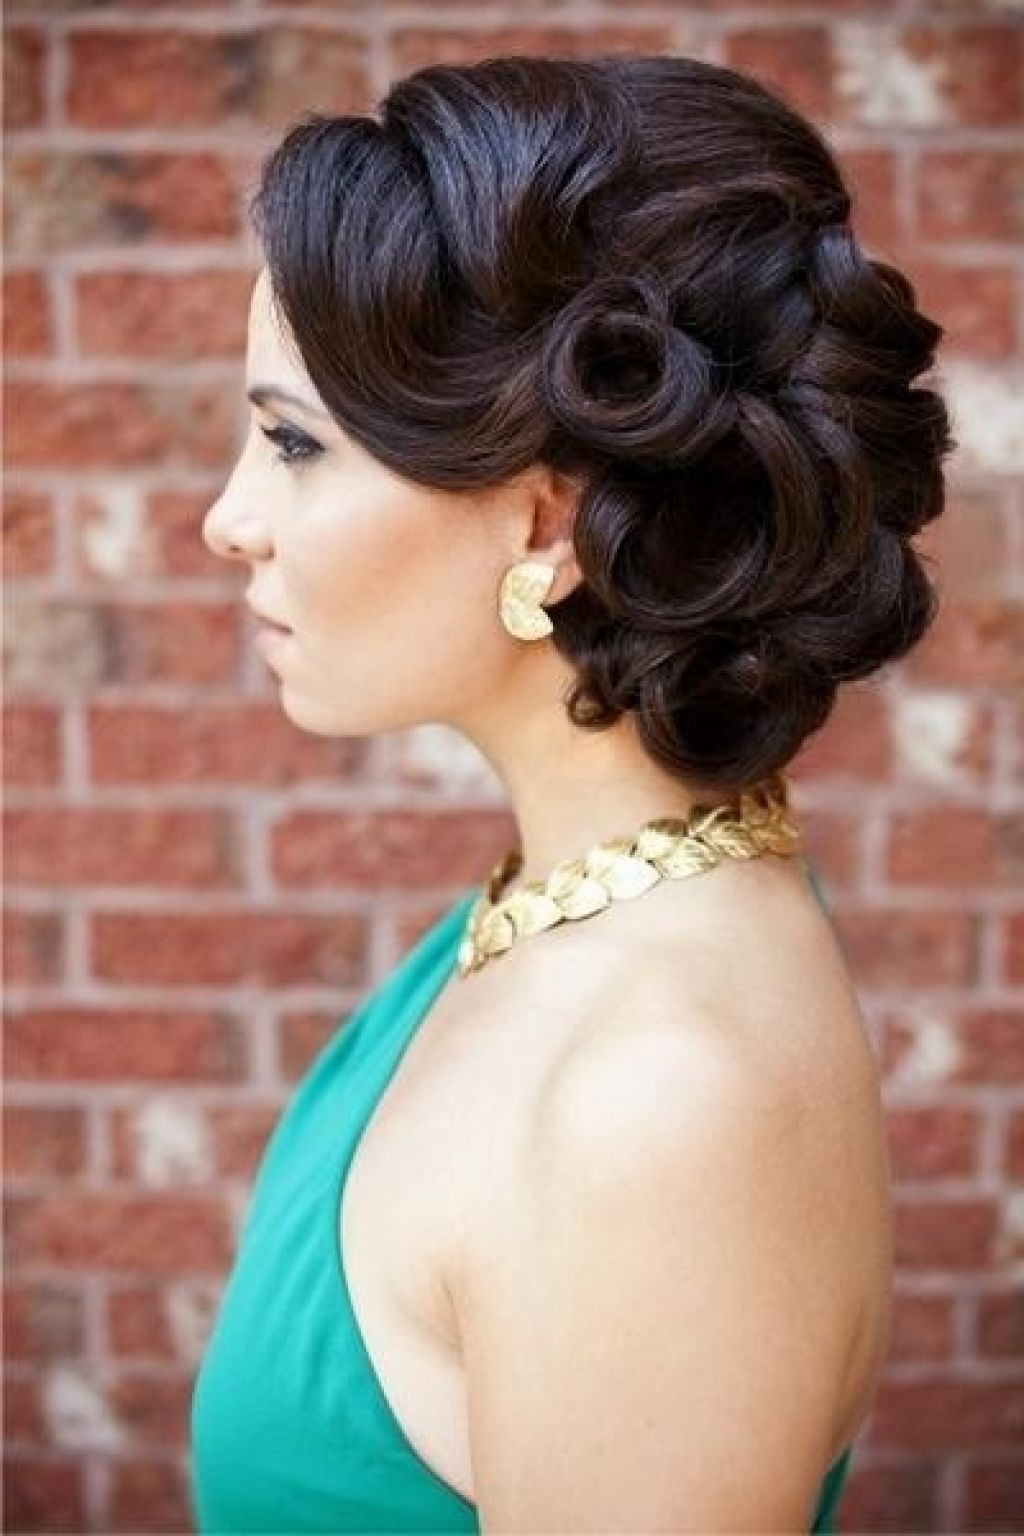 30 gorgeous wedding hairstyle ideas for your big day | short